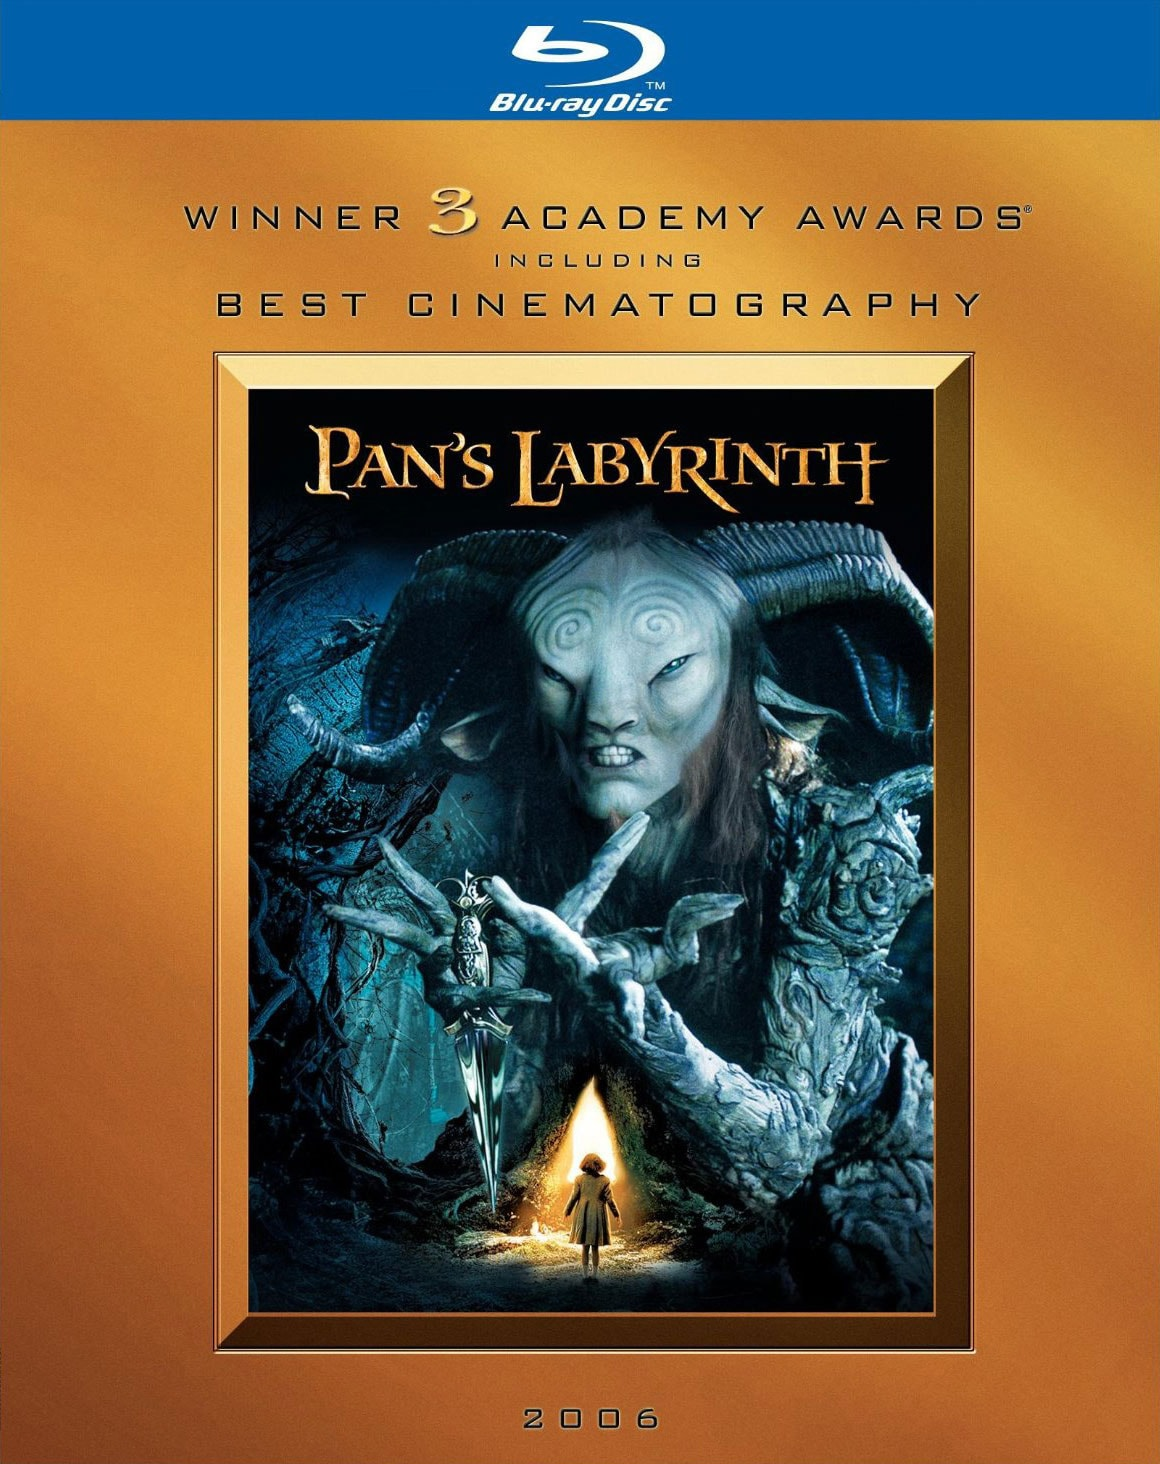 Pan's Labyrinth (Blu-ray Disc)